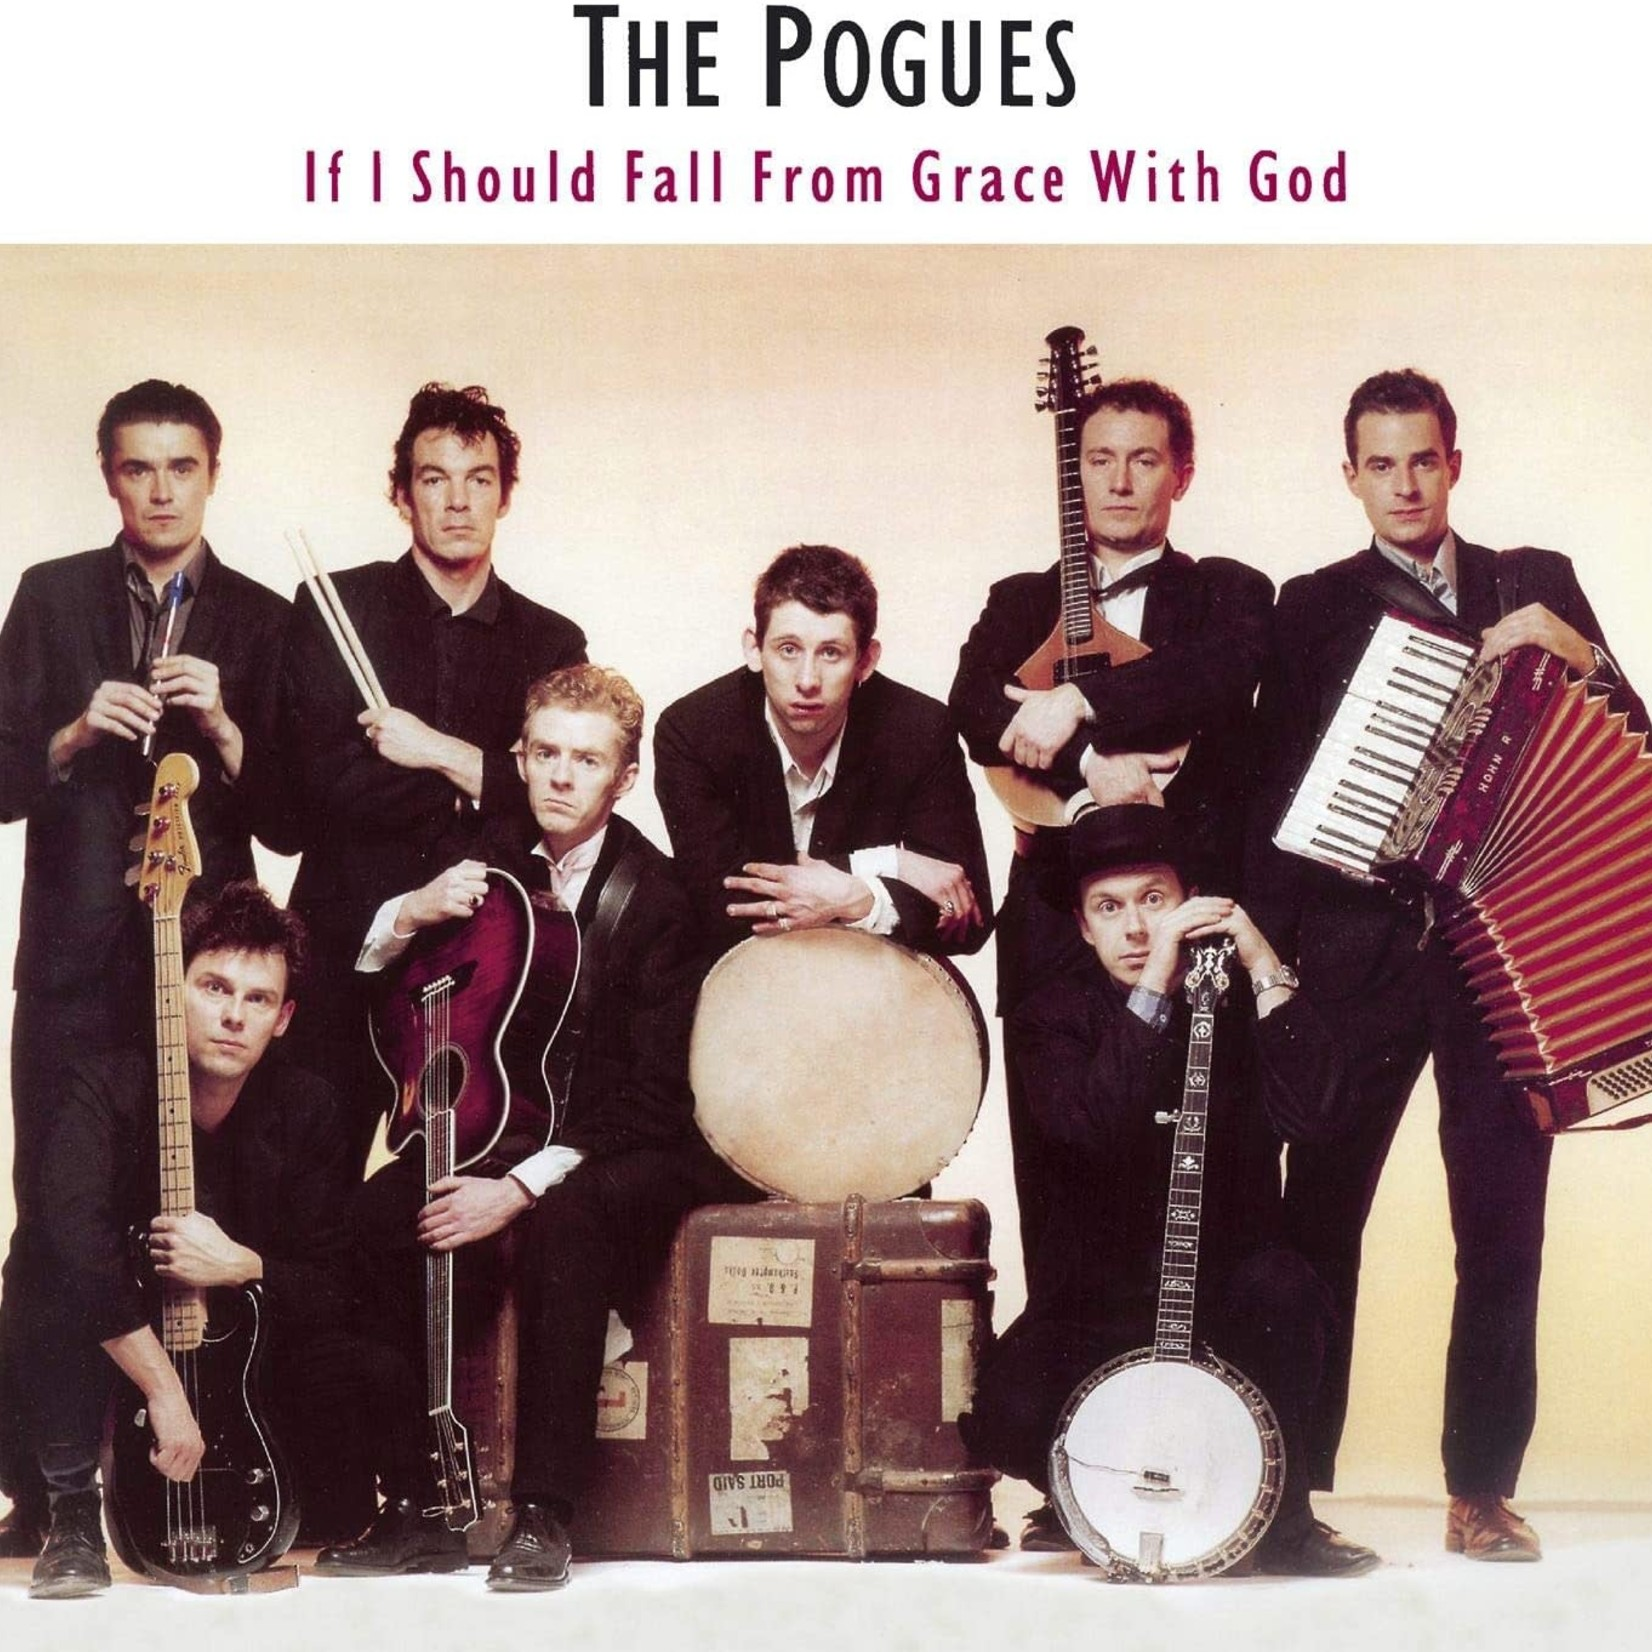 The Pogues THE POGUES - IF I SHOULD FALL FROM GRACE